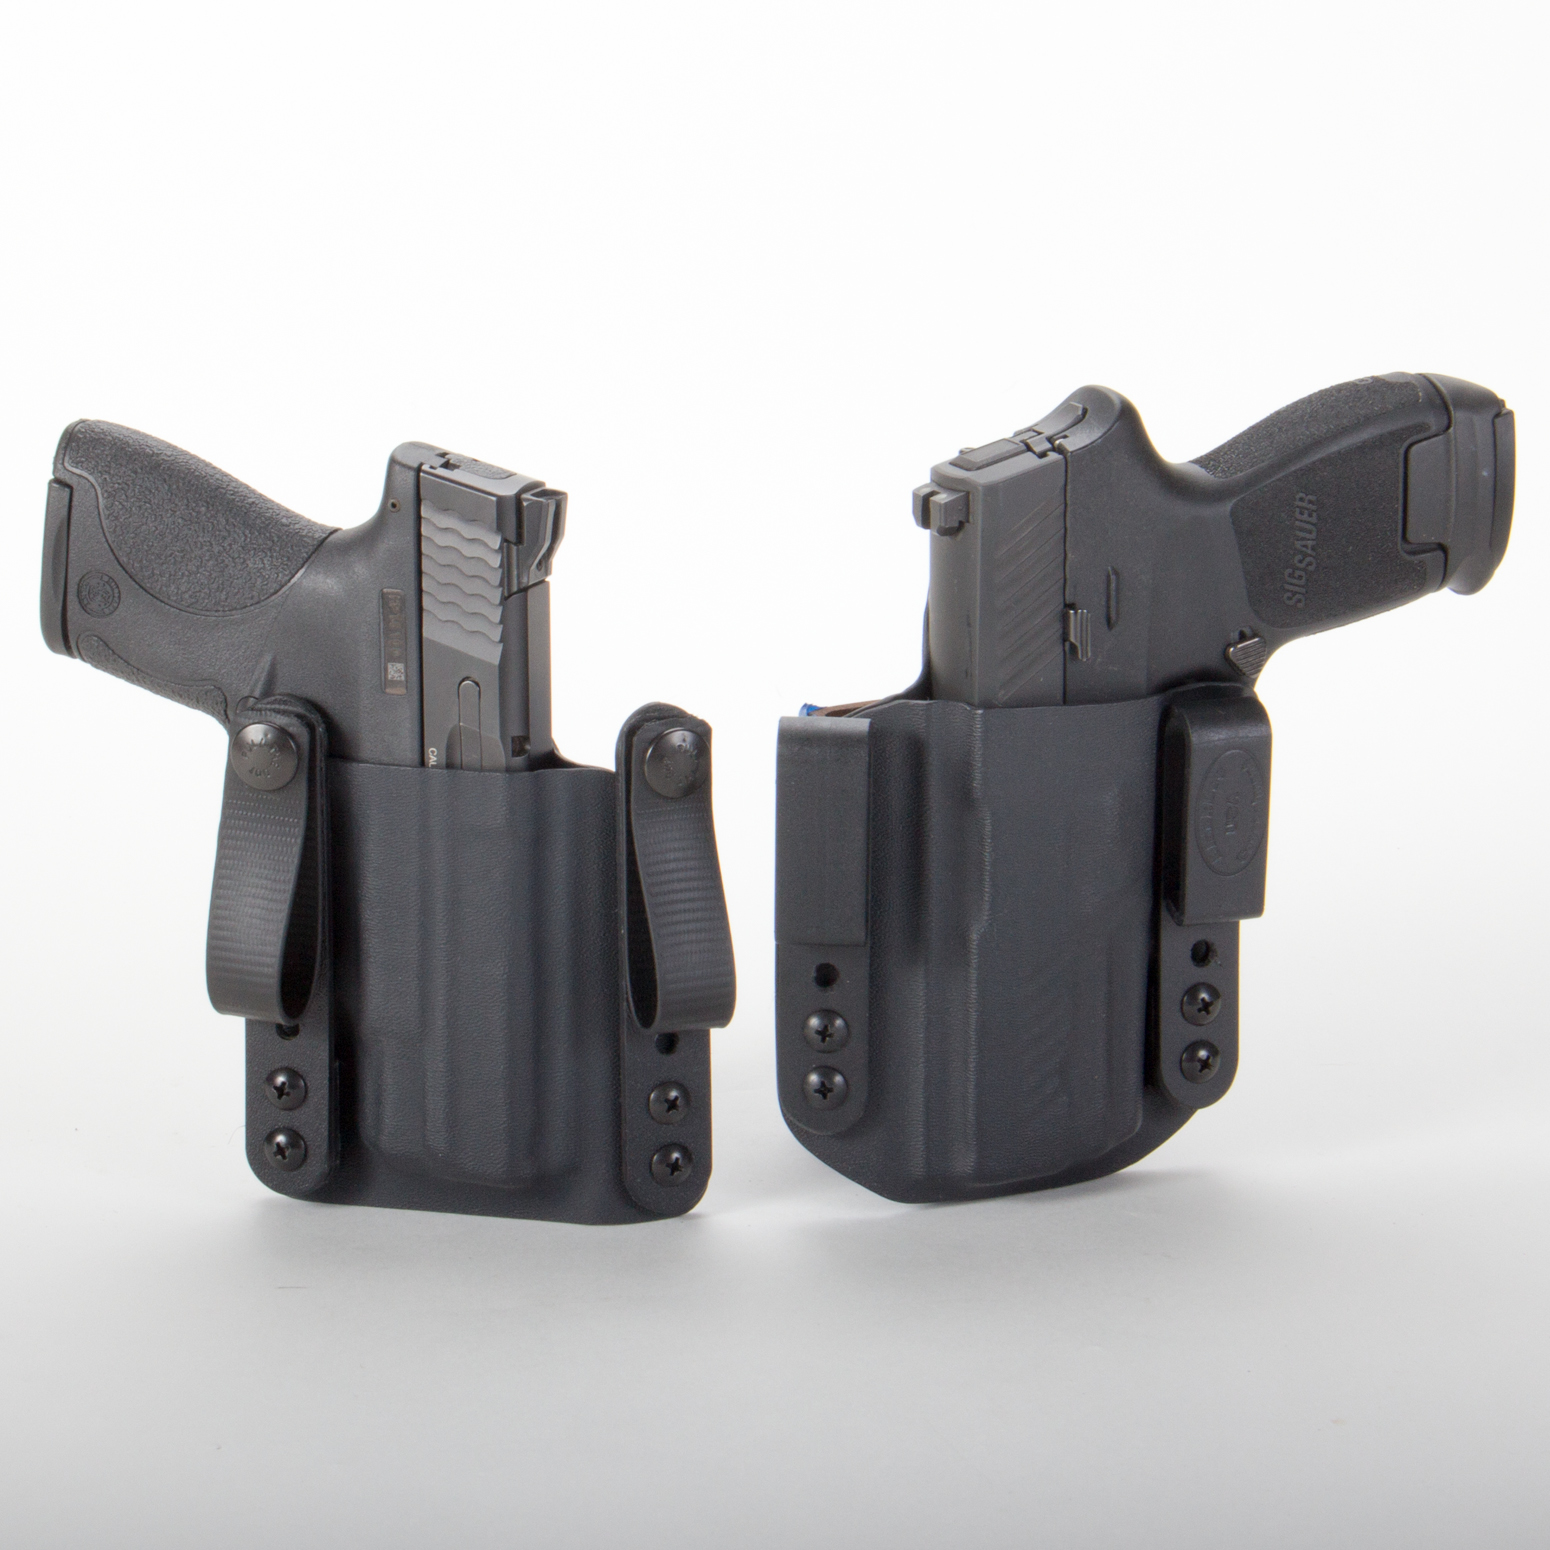 Alpha IWB Appendix Holsters